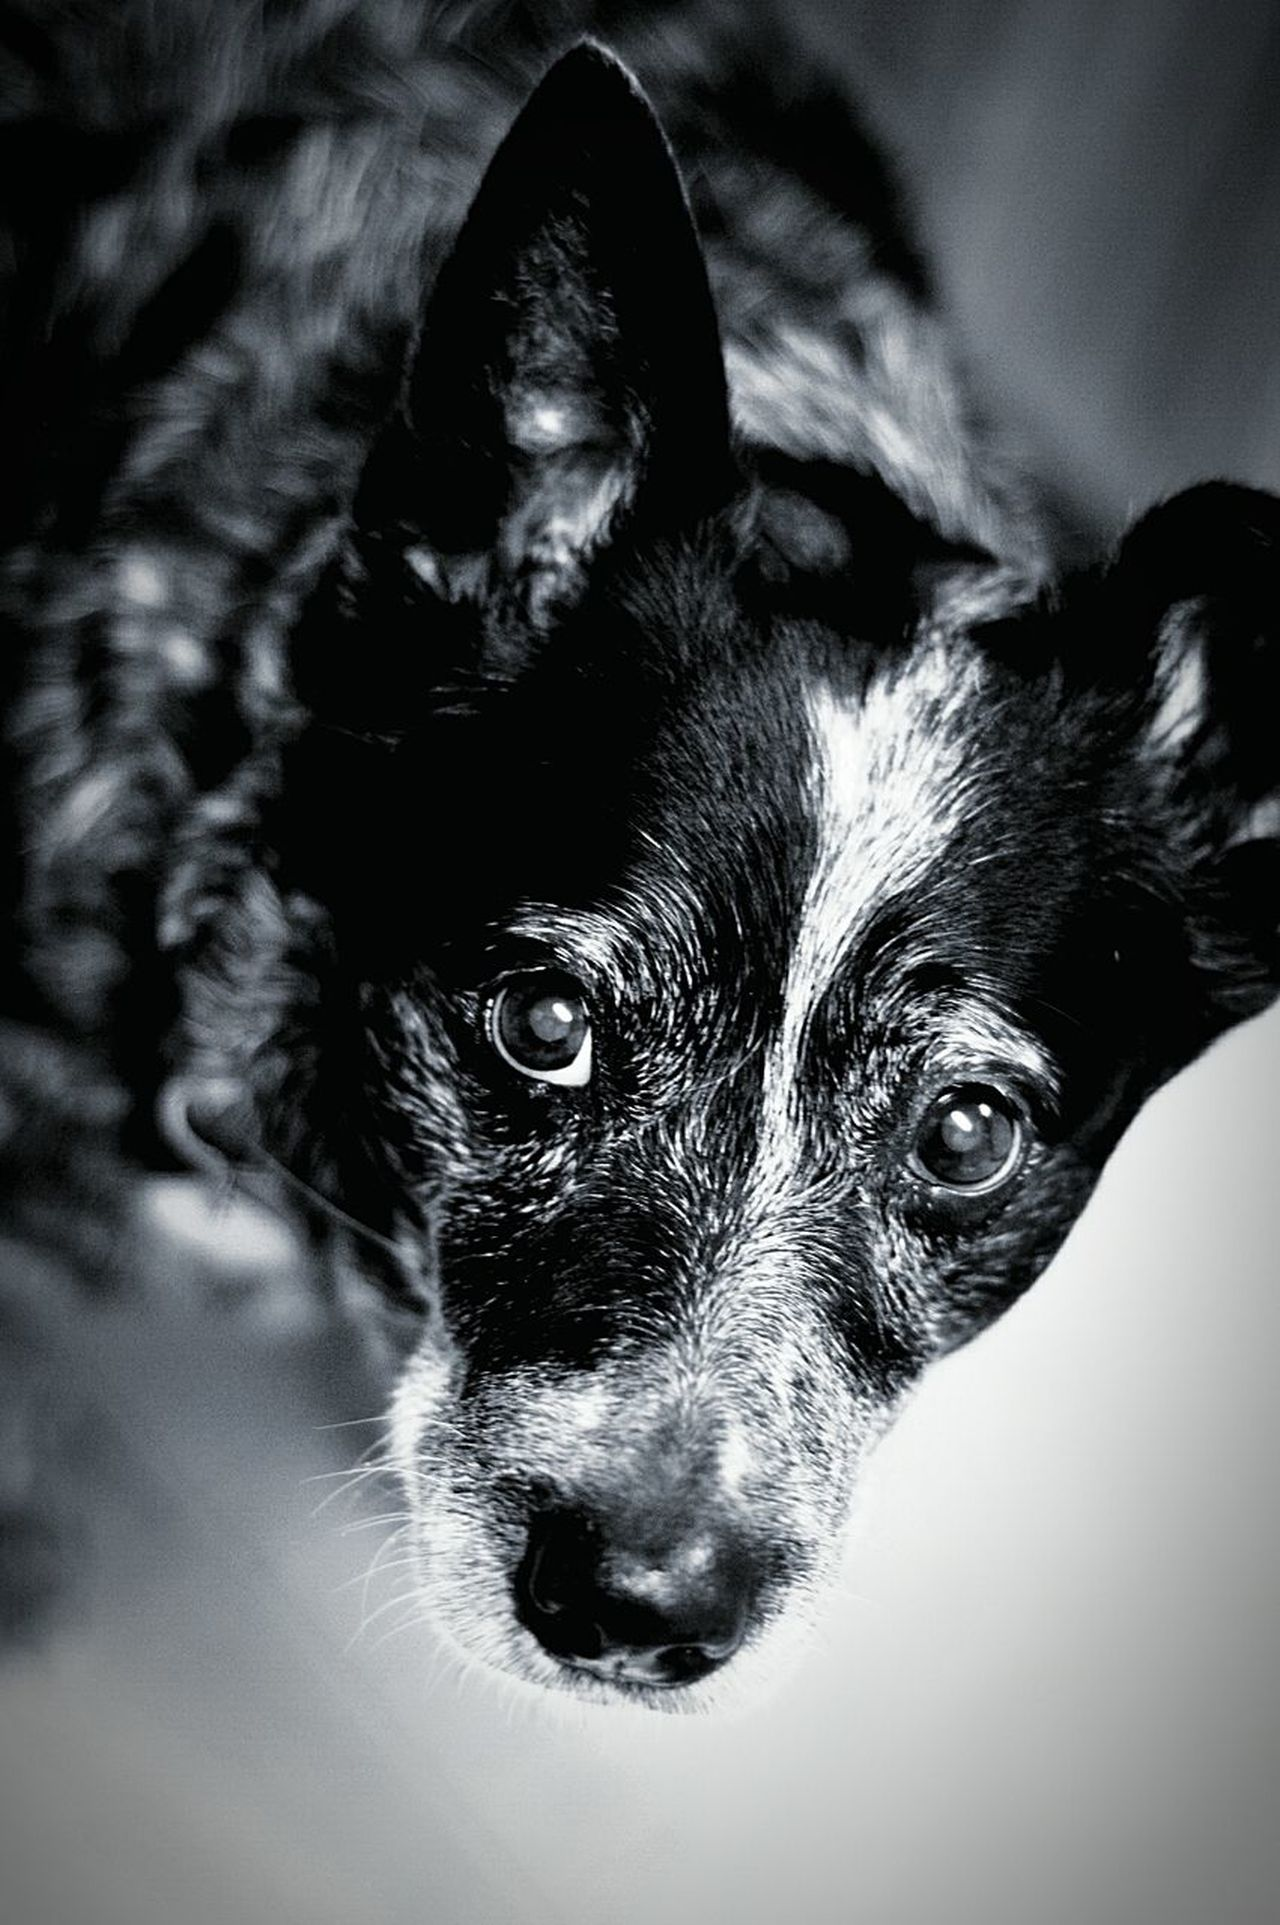 Pets Animal Themes Dog One Animal Close-up EyeEm Blue Heeler Eyeem Market Fine Art Eyeem Marketplace EyeEm Gallery Growth Black & White Black And White Photography Black And White Collection  Dogs Of EyeEm Dogslife Dogs Mans Best Friend Australian Cattle Dog Animals Collection Love Family Pet Best Of EyeEm EyeEmNewHere The Portraitist - 2017 EyeEm Awards